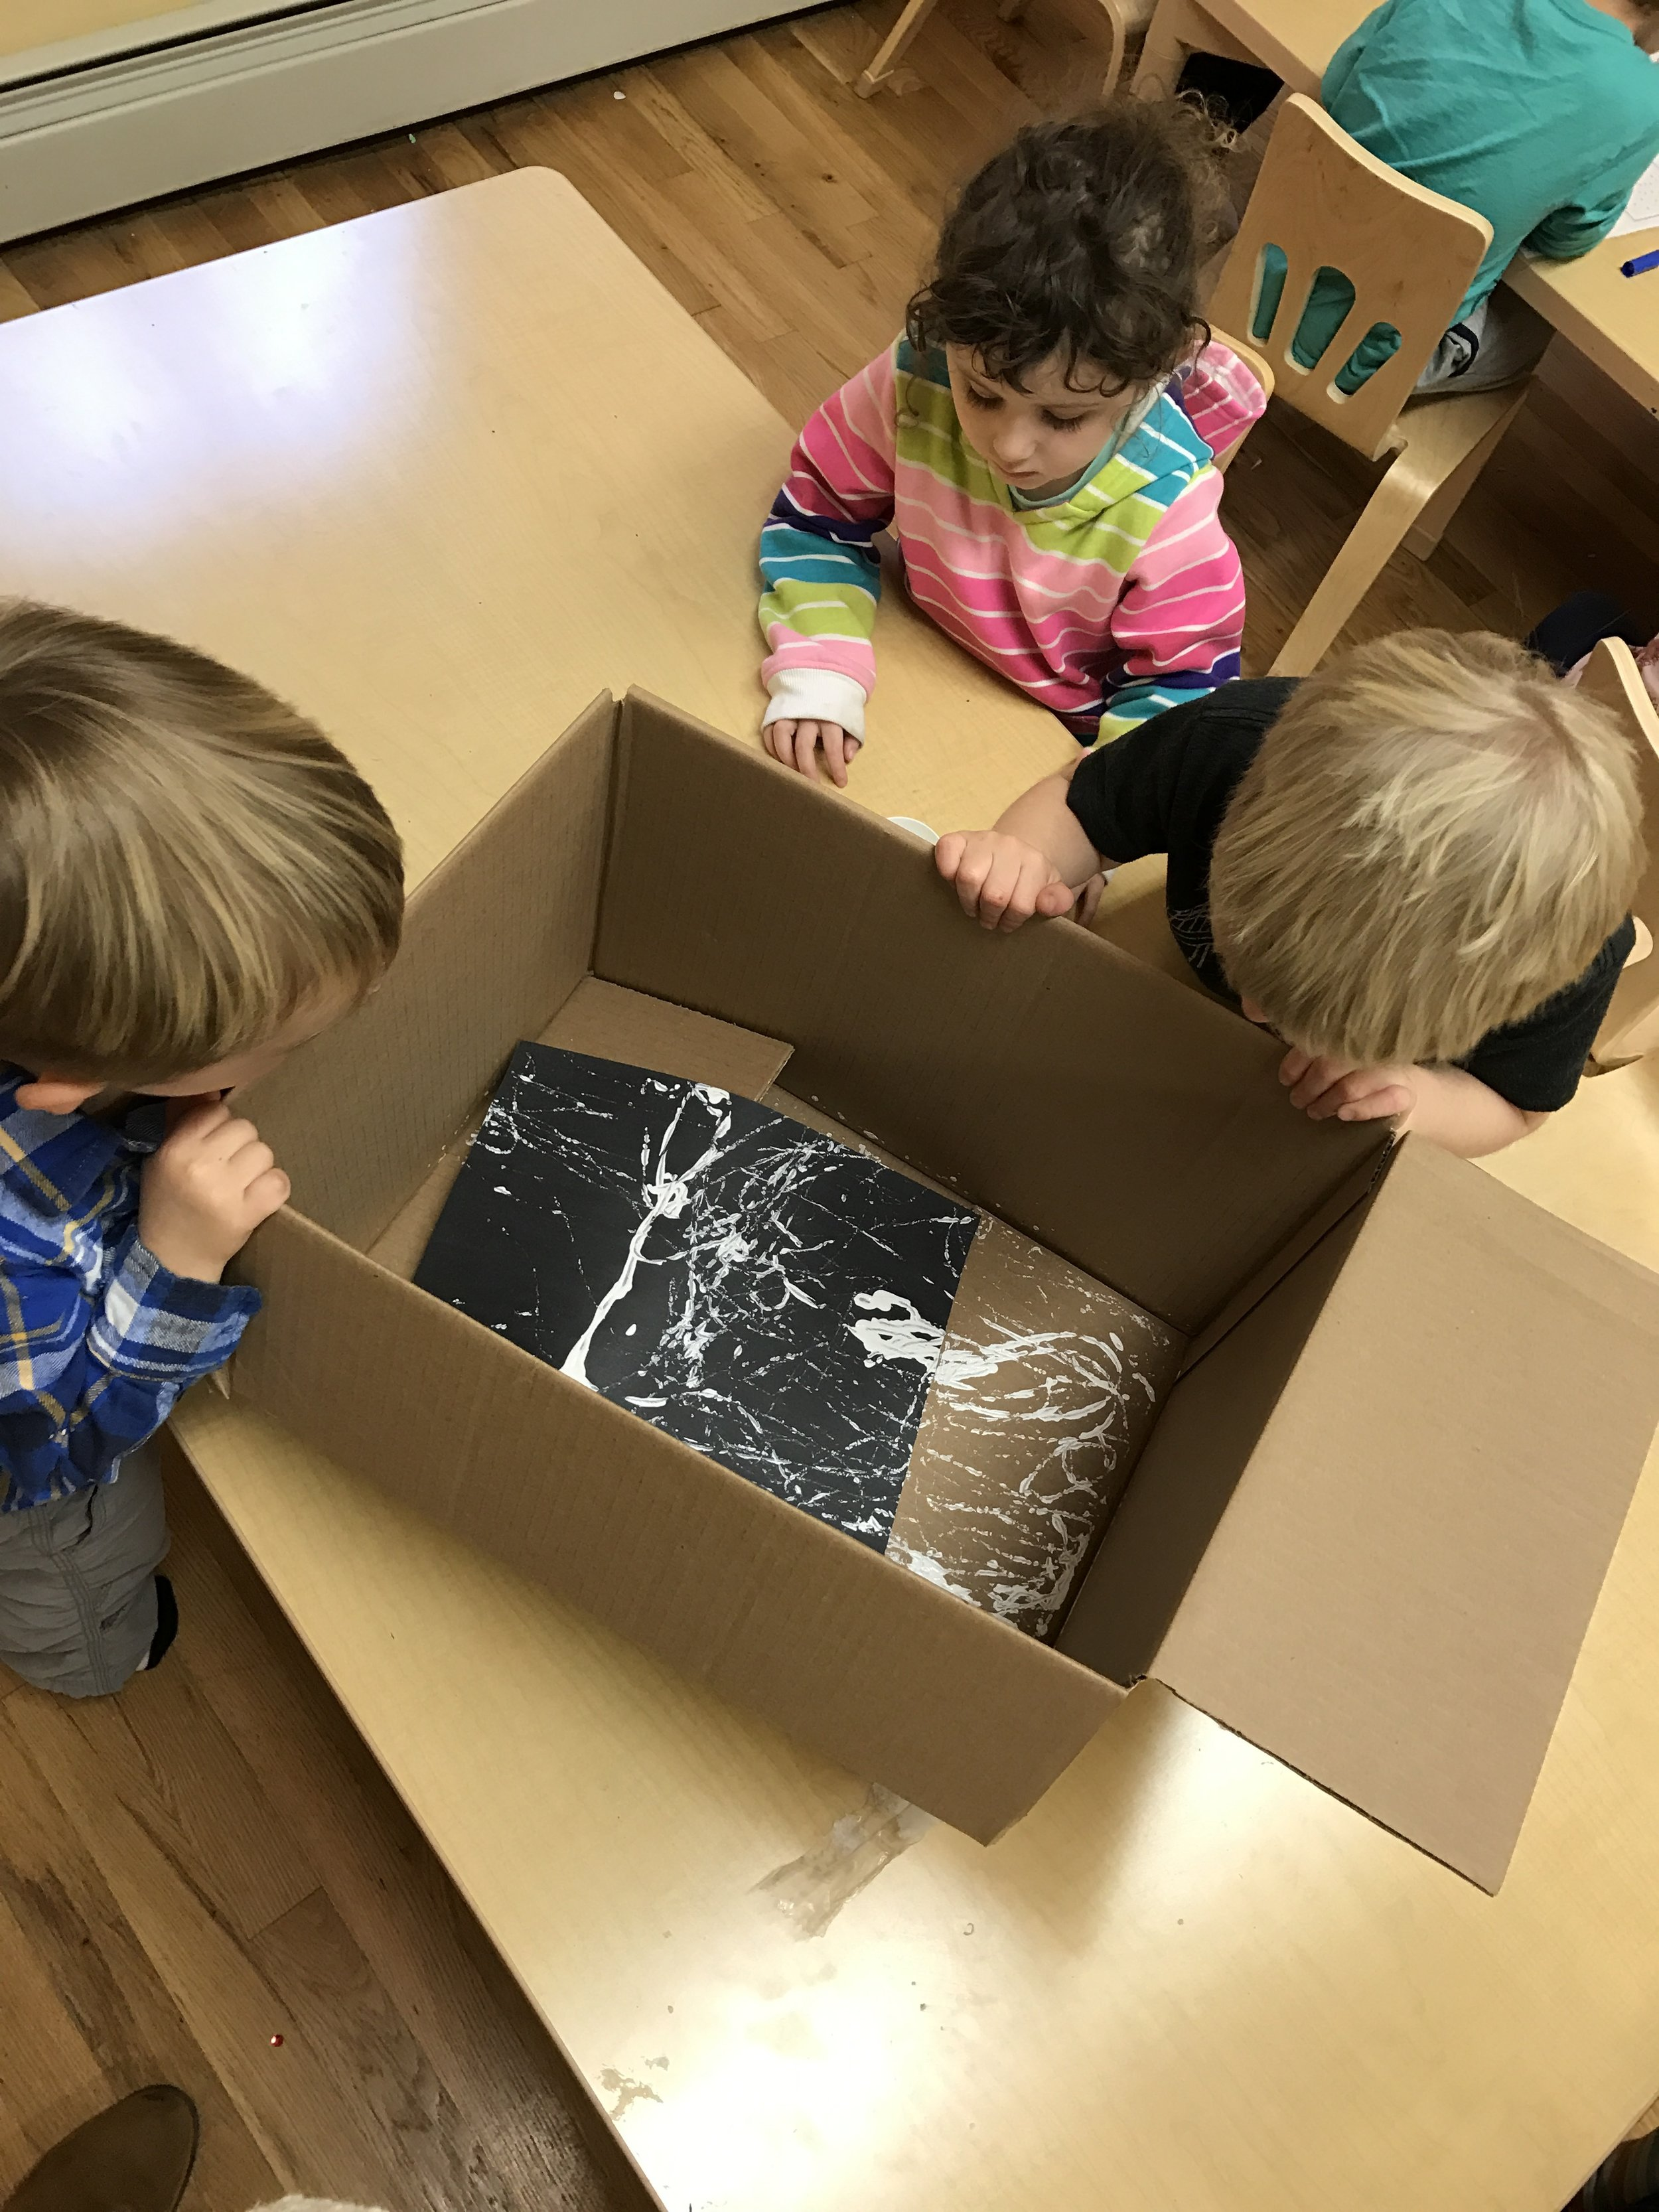 Marble art gets the ball rolling on our spider web designs!